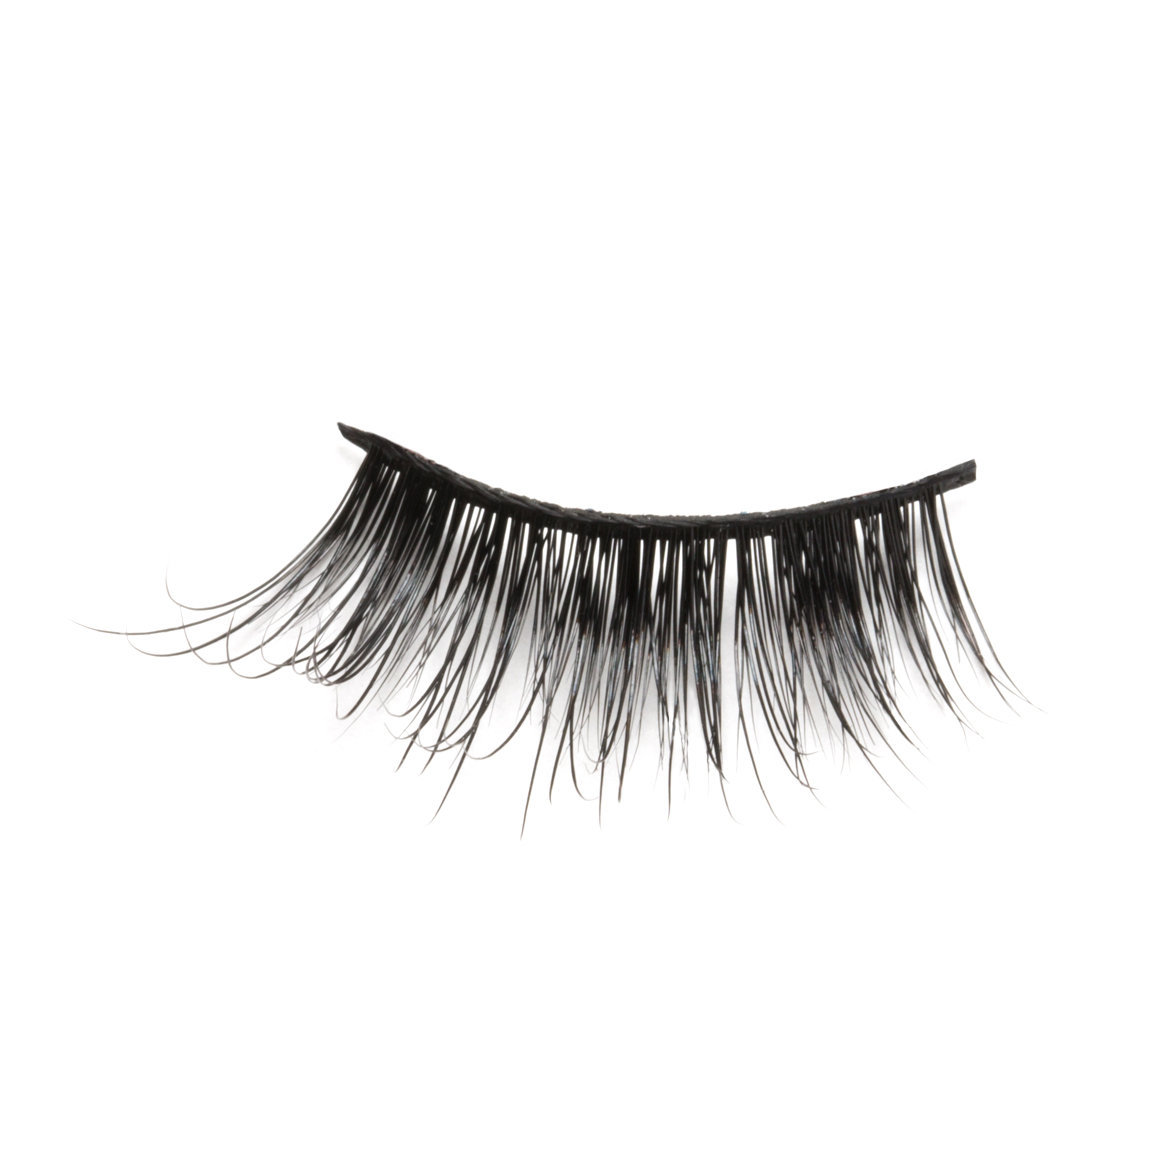 Velour Lashes The Extra 'Oomph' product swatch.